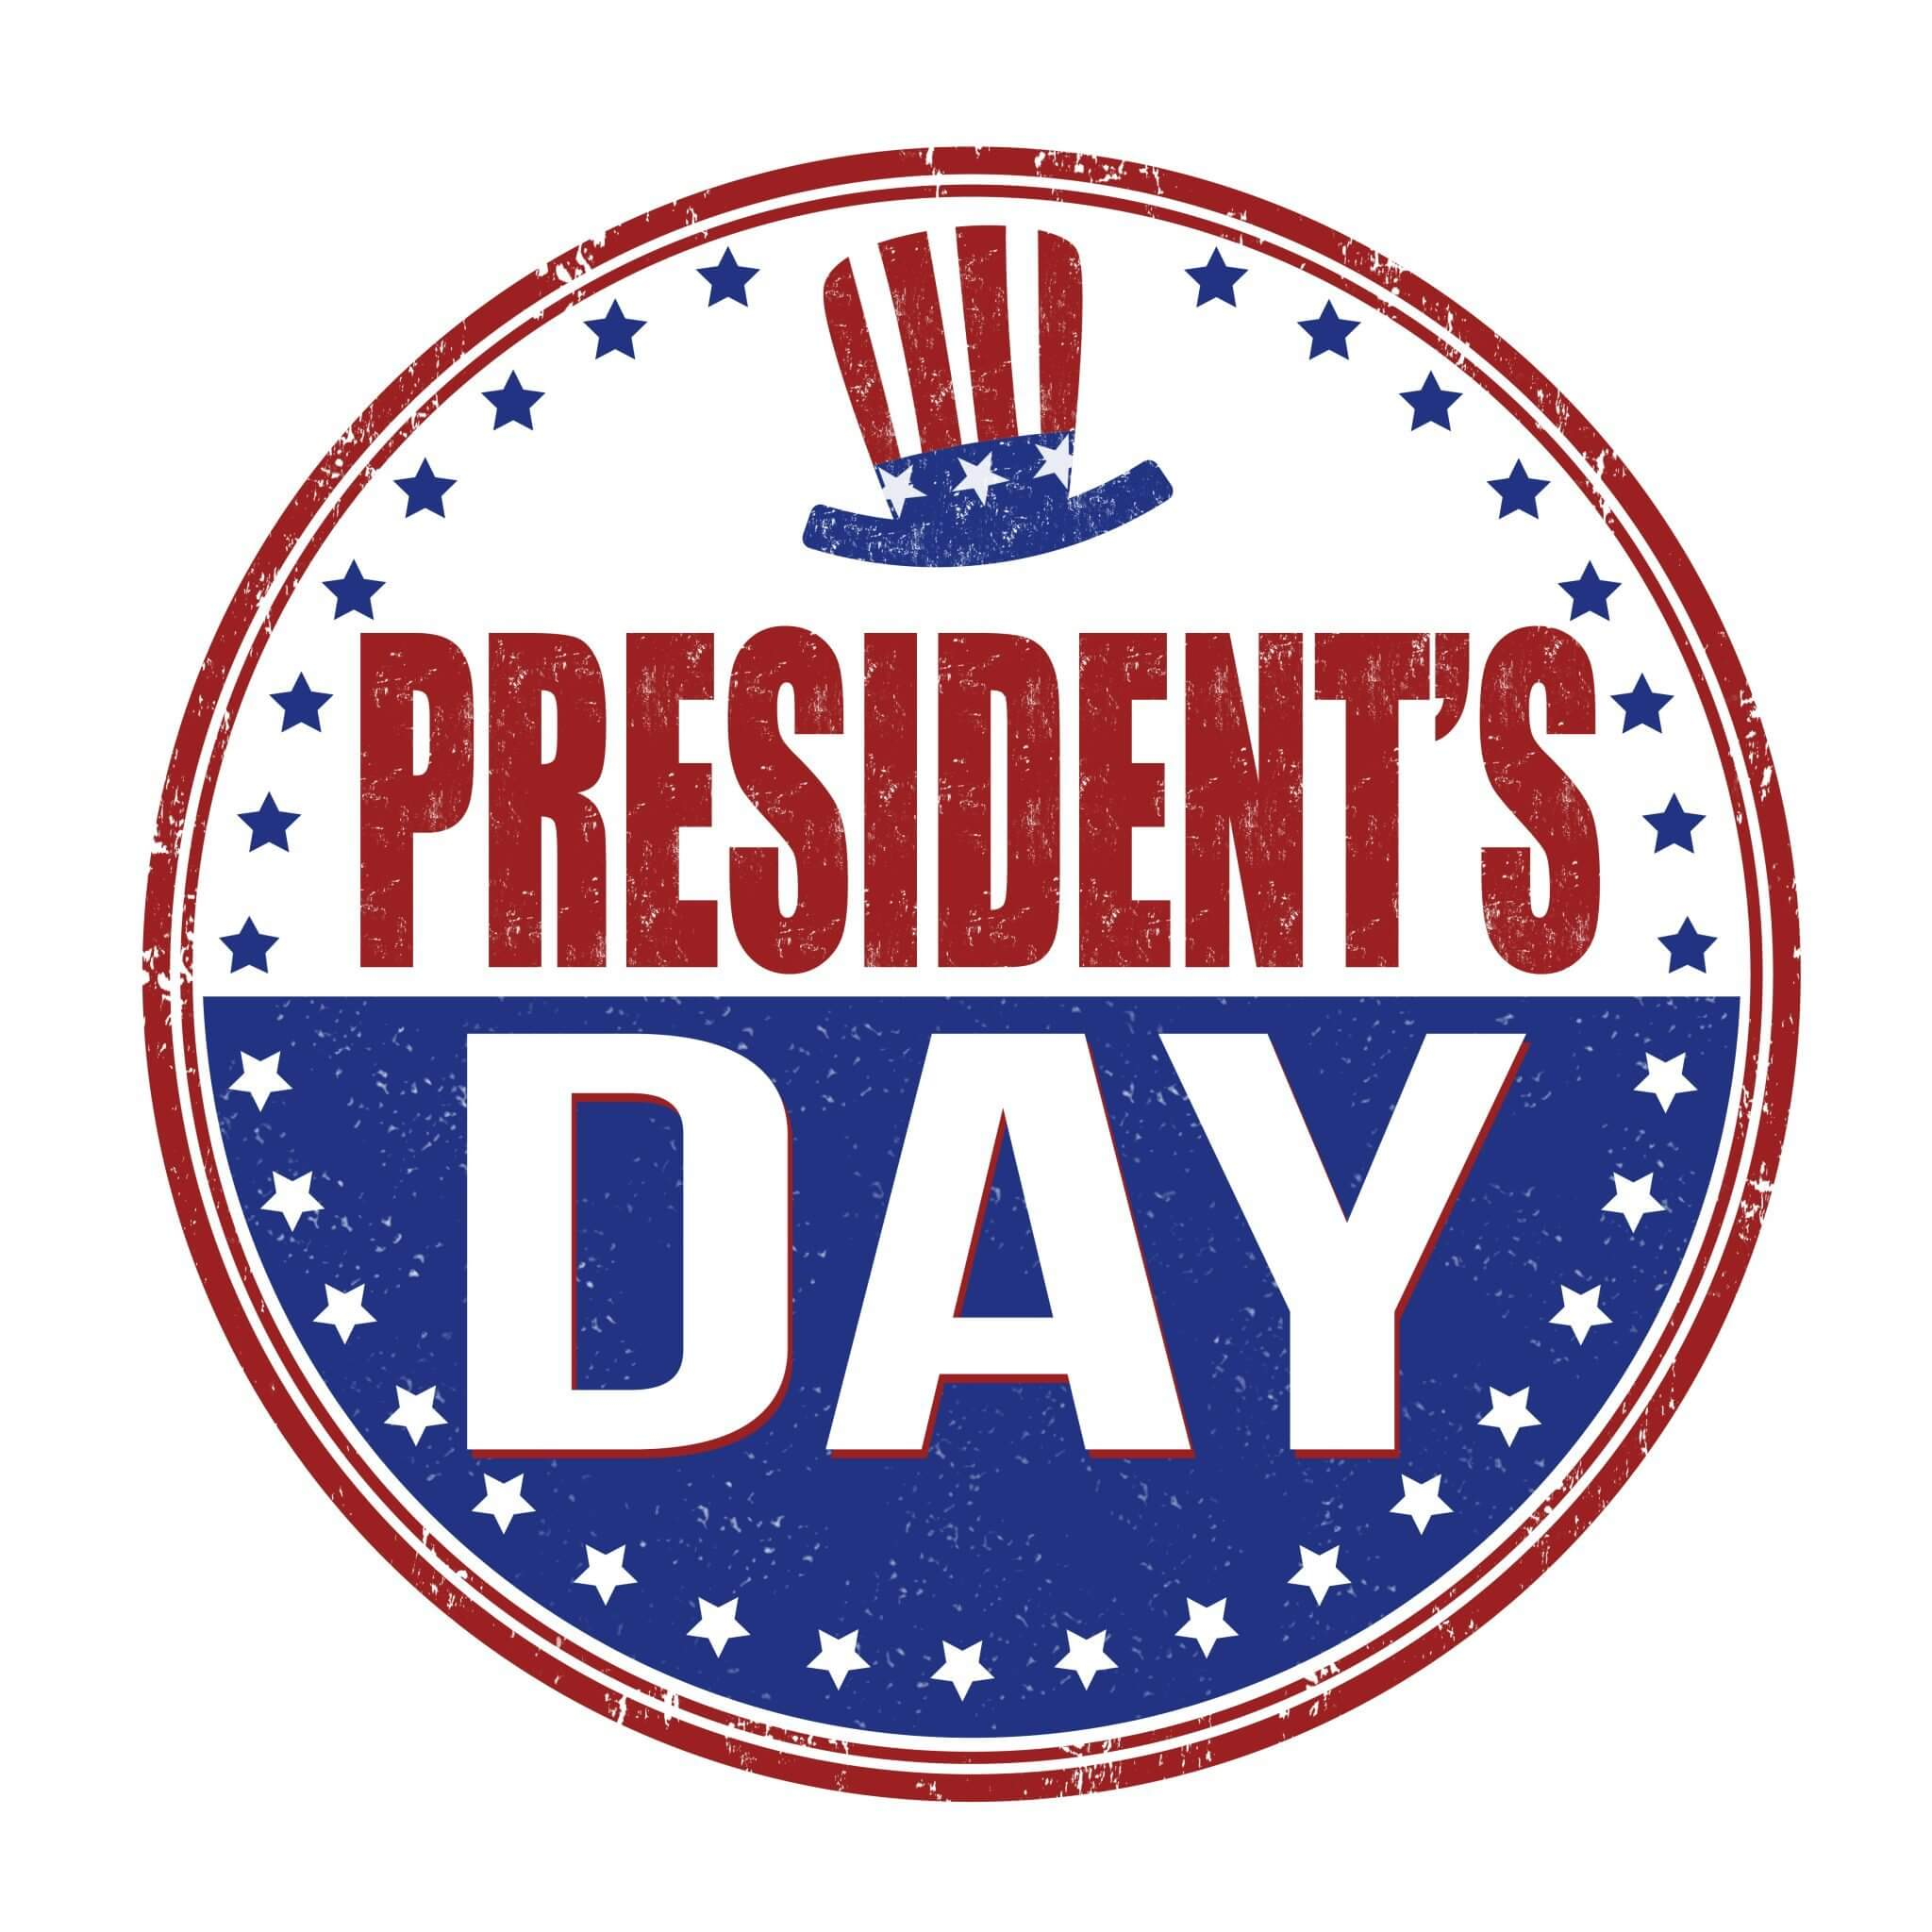 President's Day Service Special includes: conventional oil and filter change, replace engine air filter & front wipers